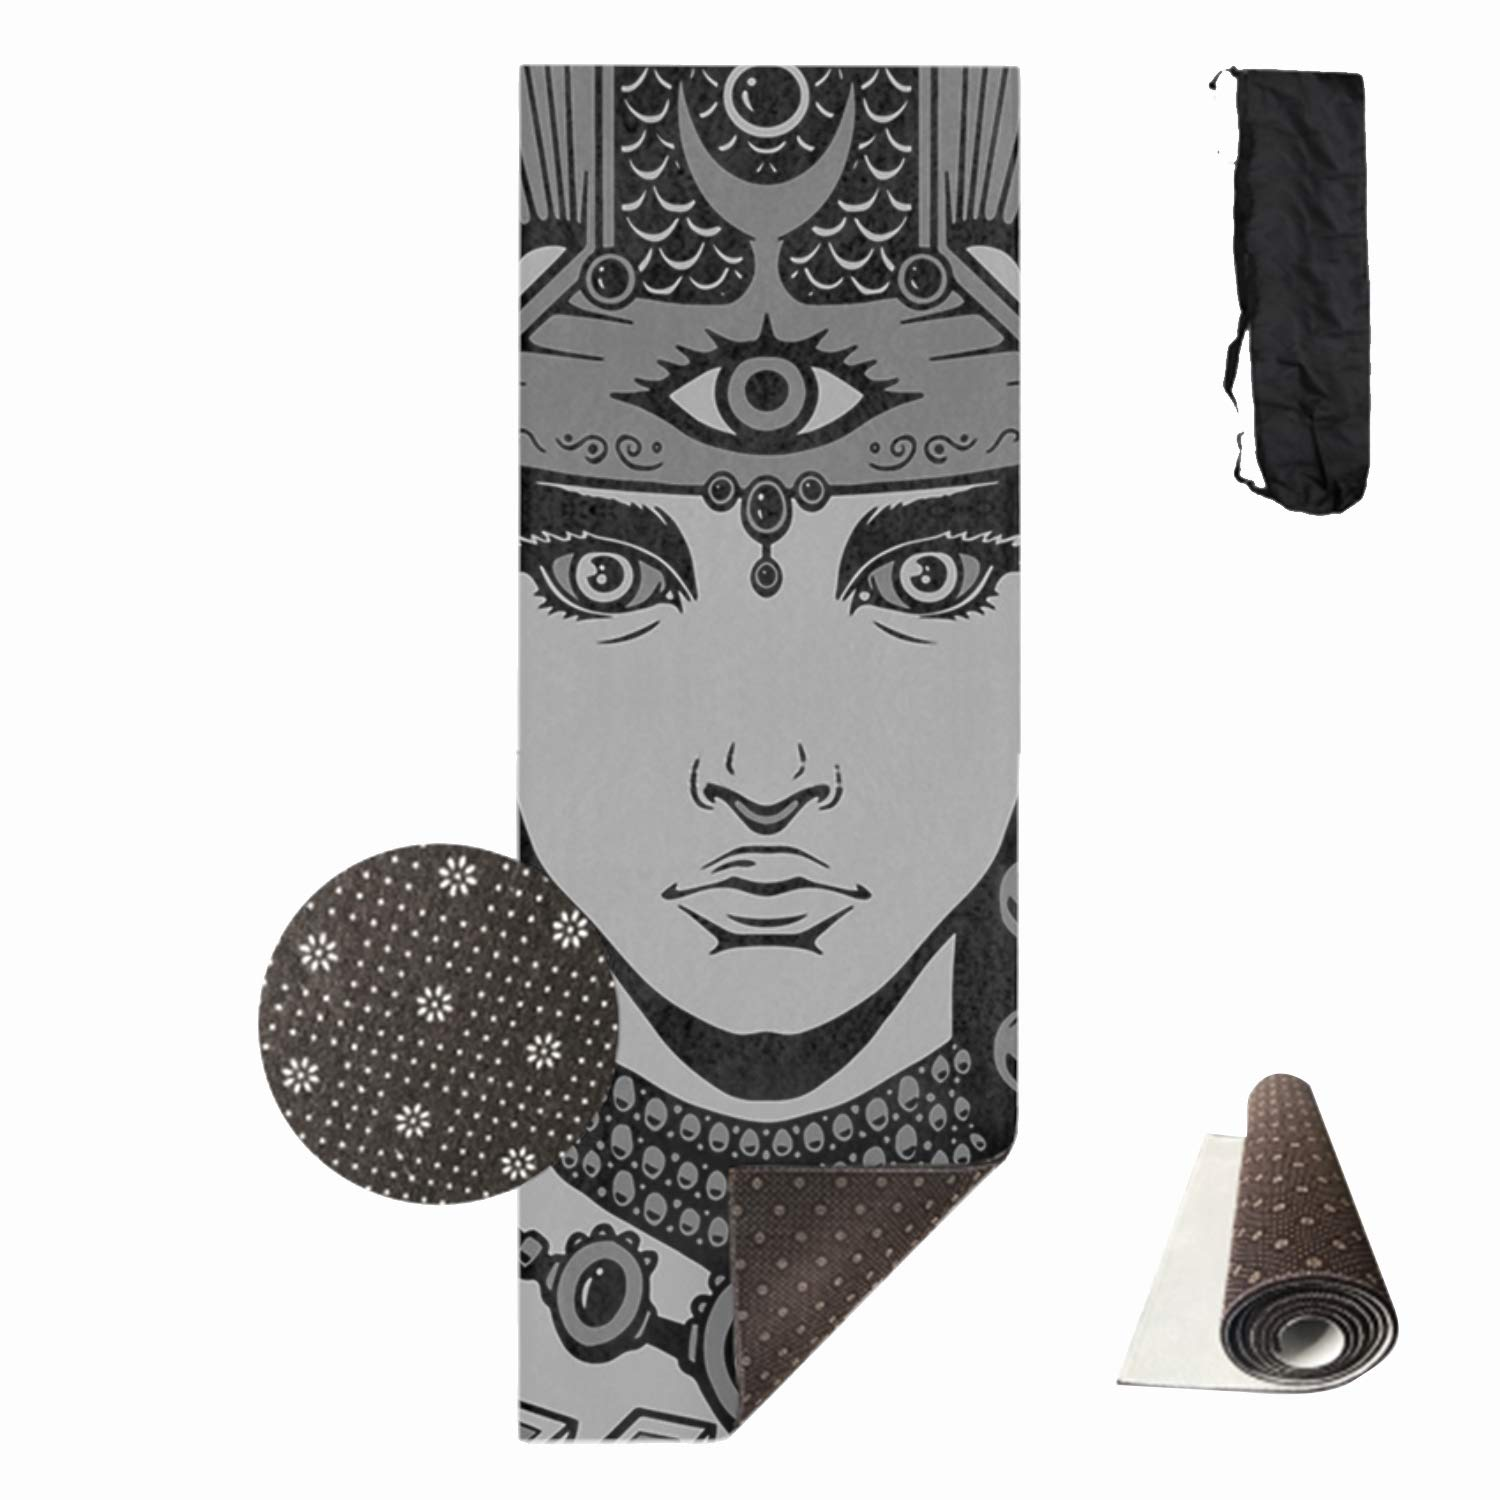 HHNYL Goddess Yoga Mats Luxuriously Soft, Printed, Non-Slip, Eco Friendly Yoga Mat